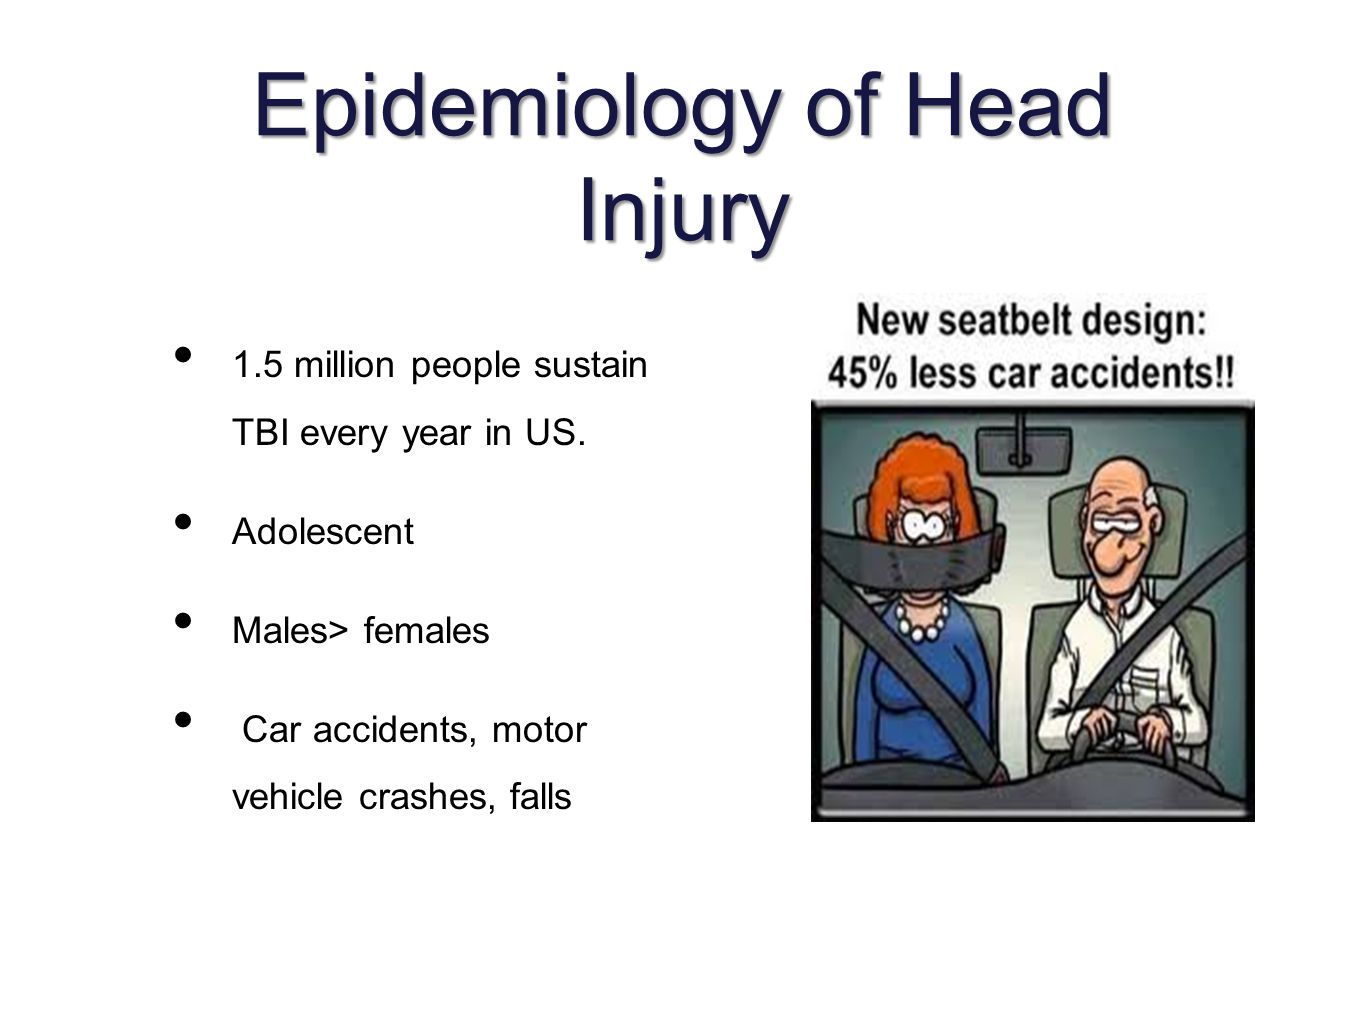 Epidemiology of Head Injury 1.5 million people sustain TBI every year in US.